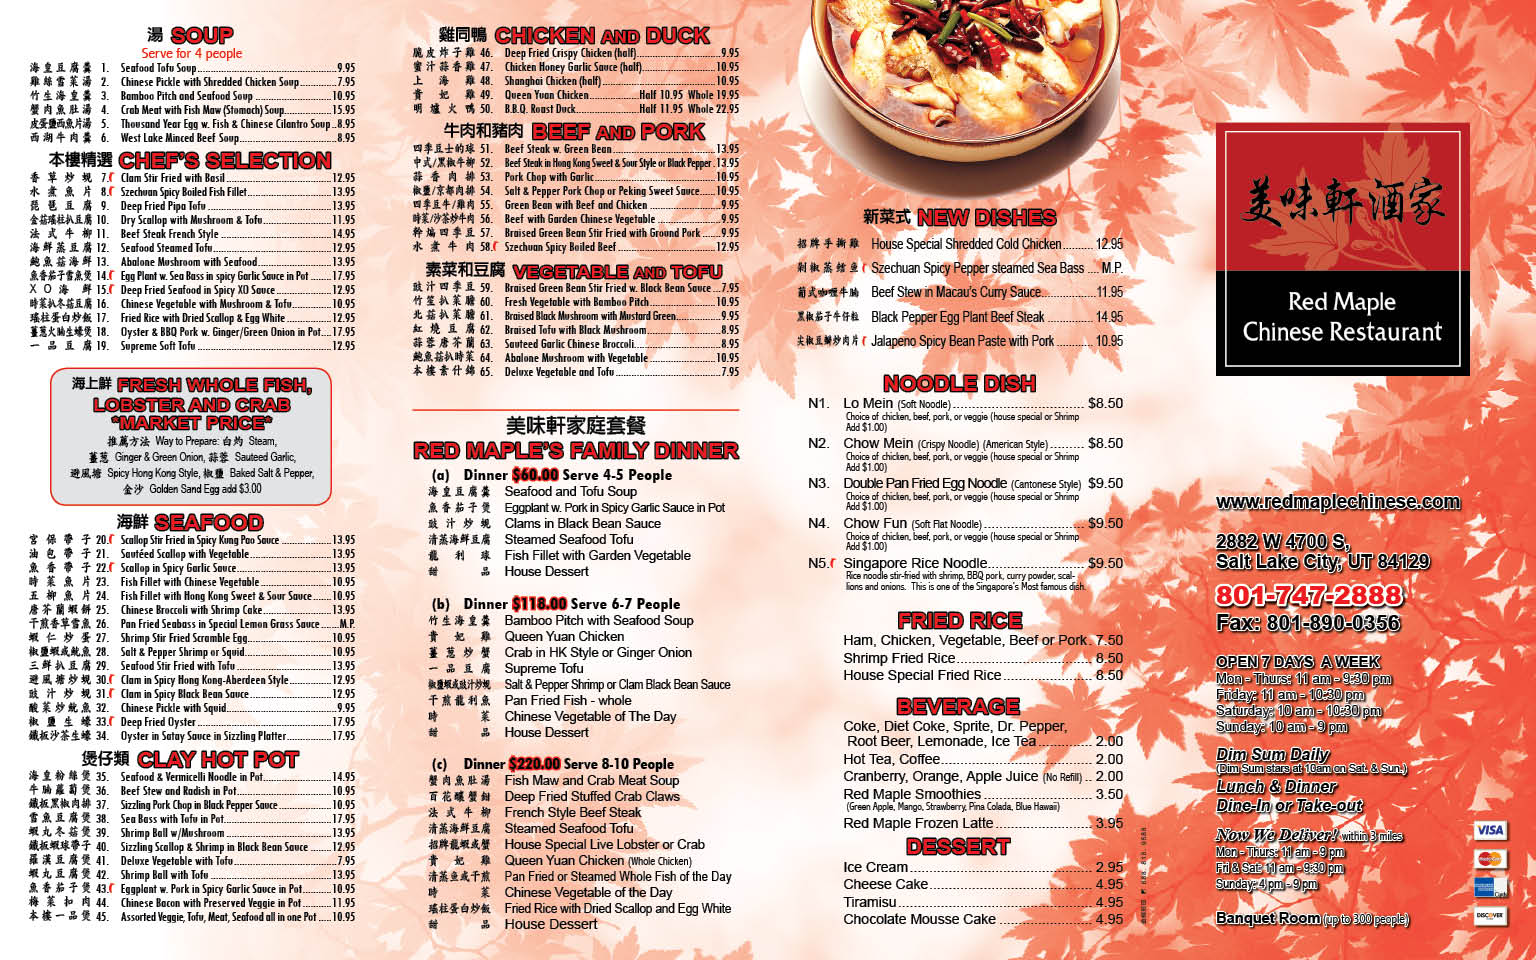 Menu | Welcome to The Best Asian Food in Hurst City